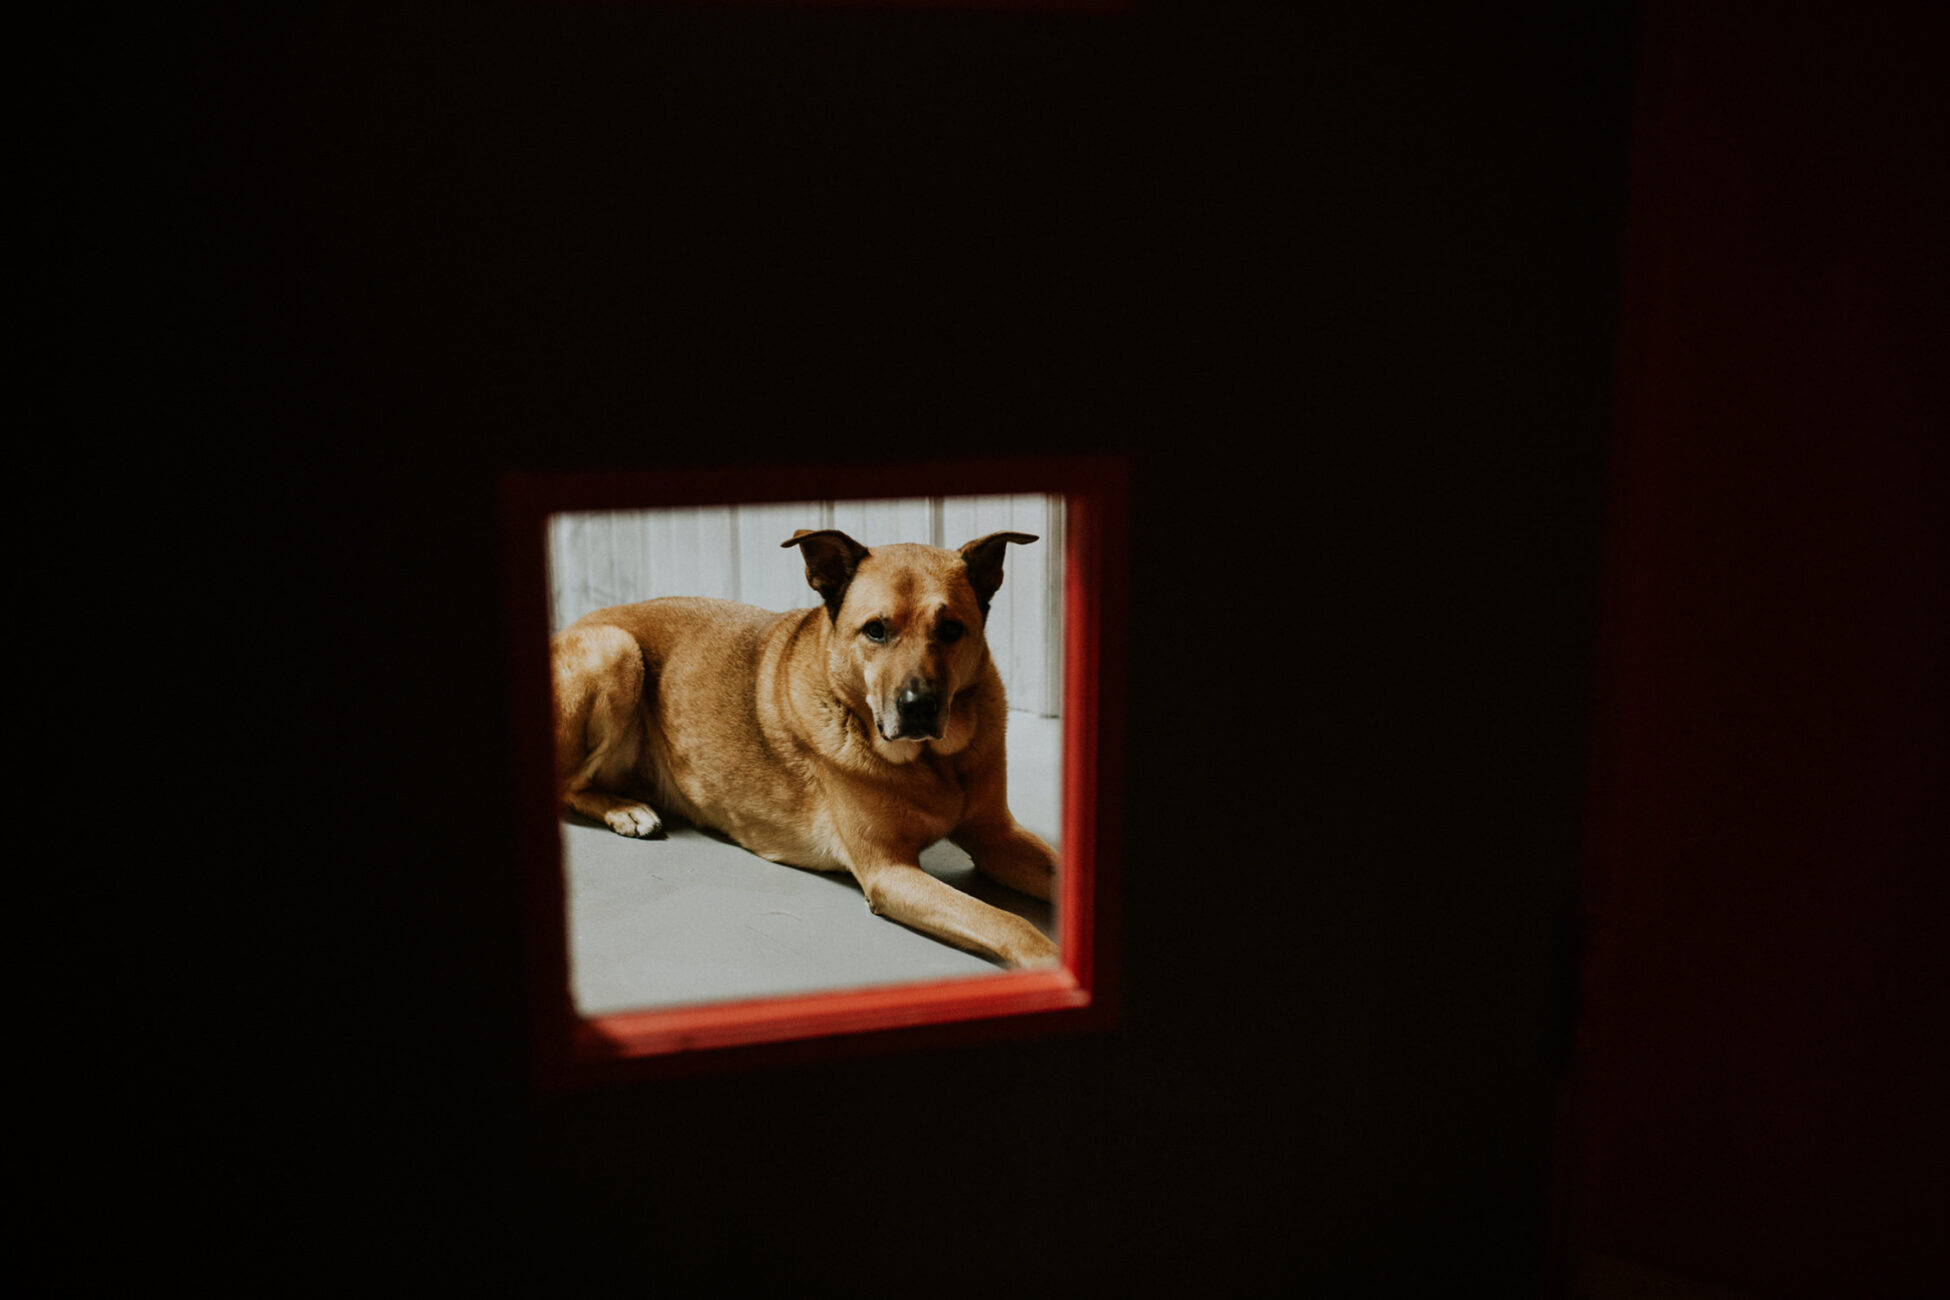 a dog looking through a small door window in a recording studio during a branding photo session